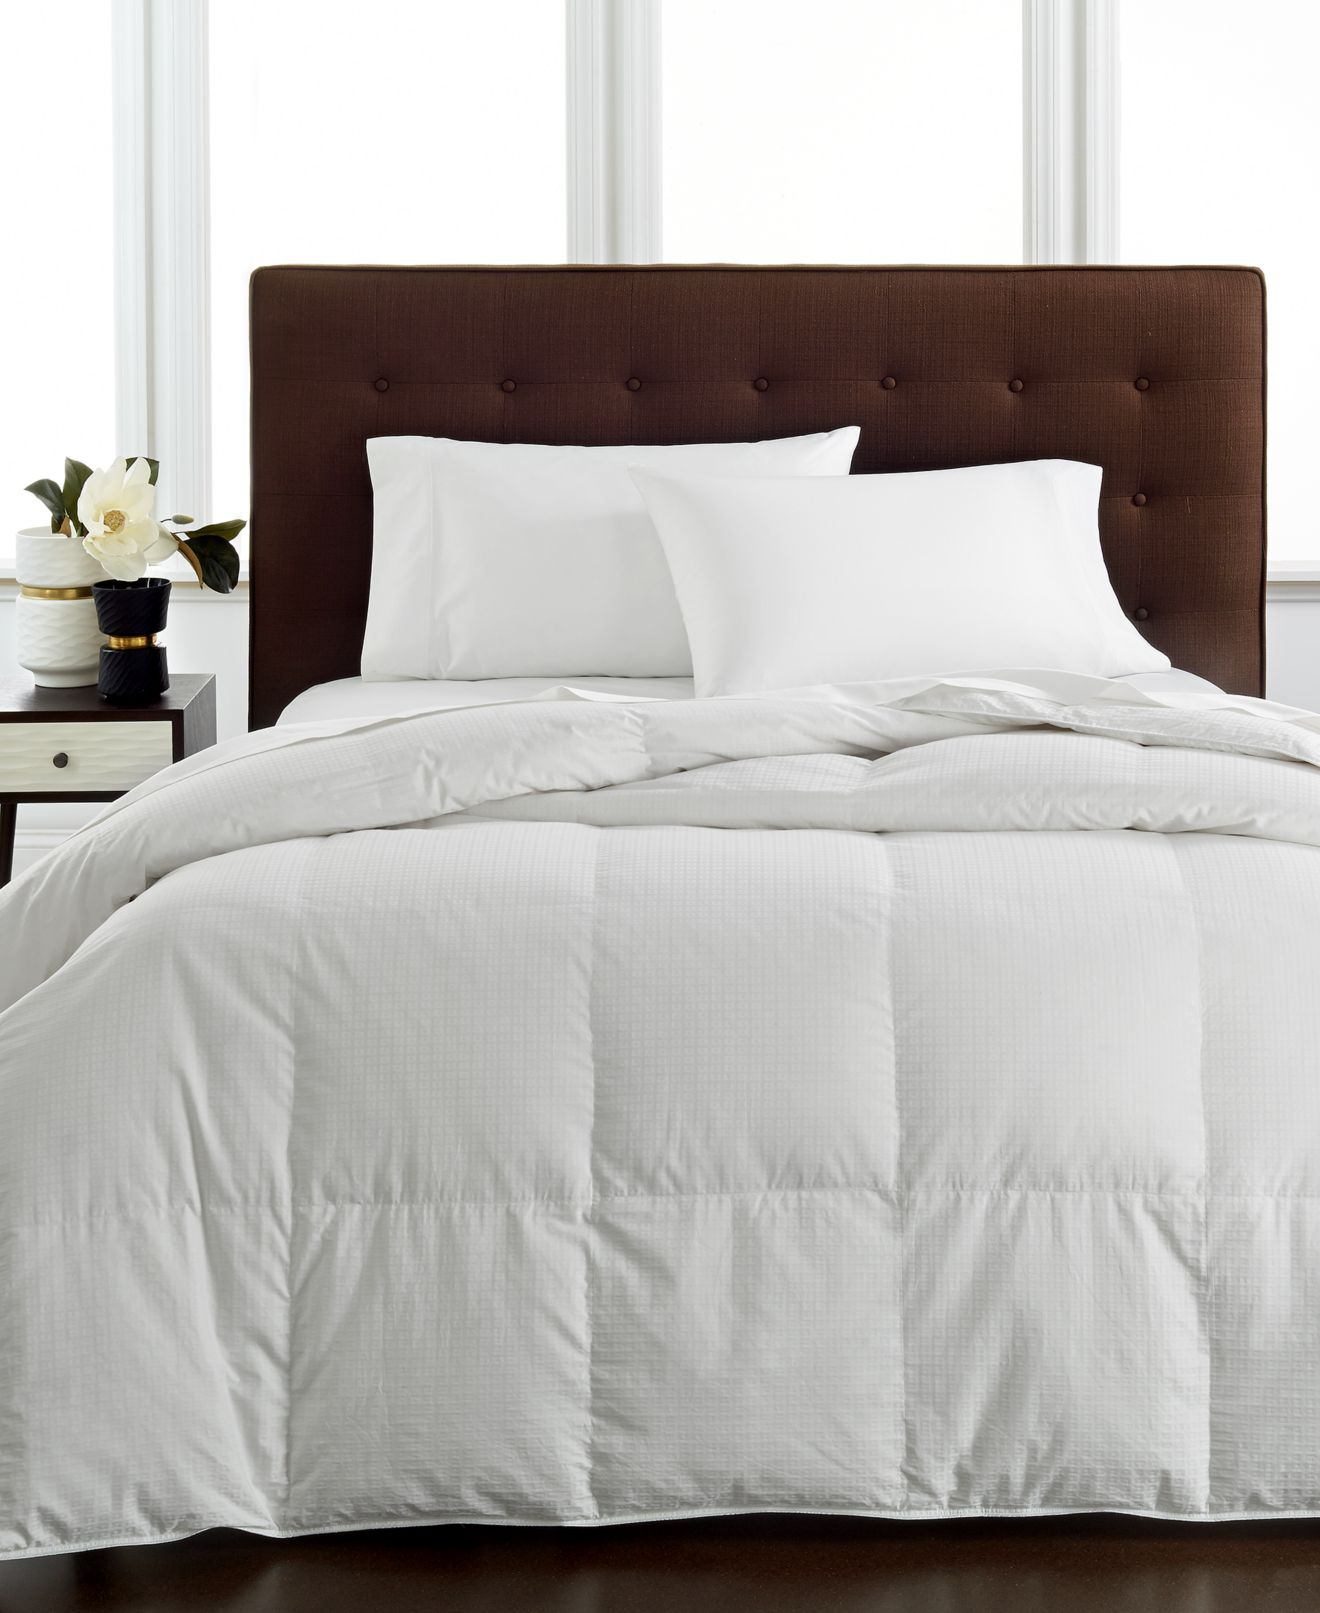 Duvet Covers That Fit Ikea Comforters Tj Maxx Bedding At